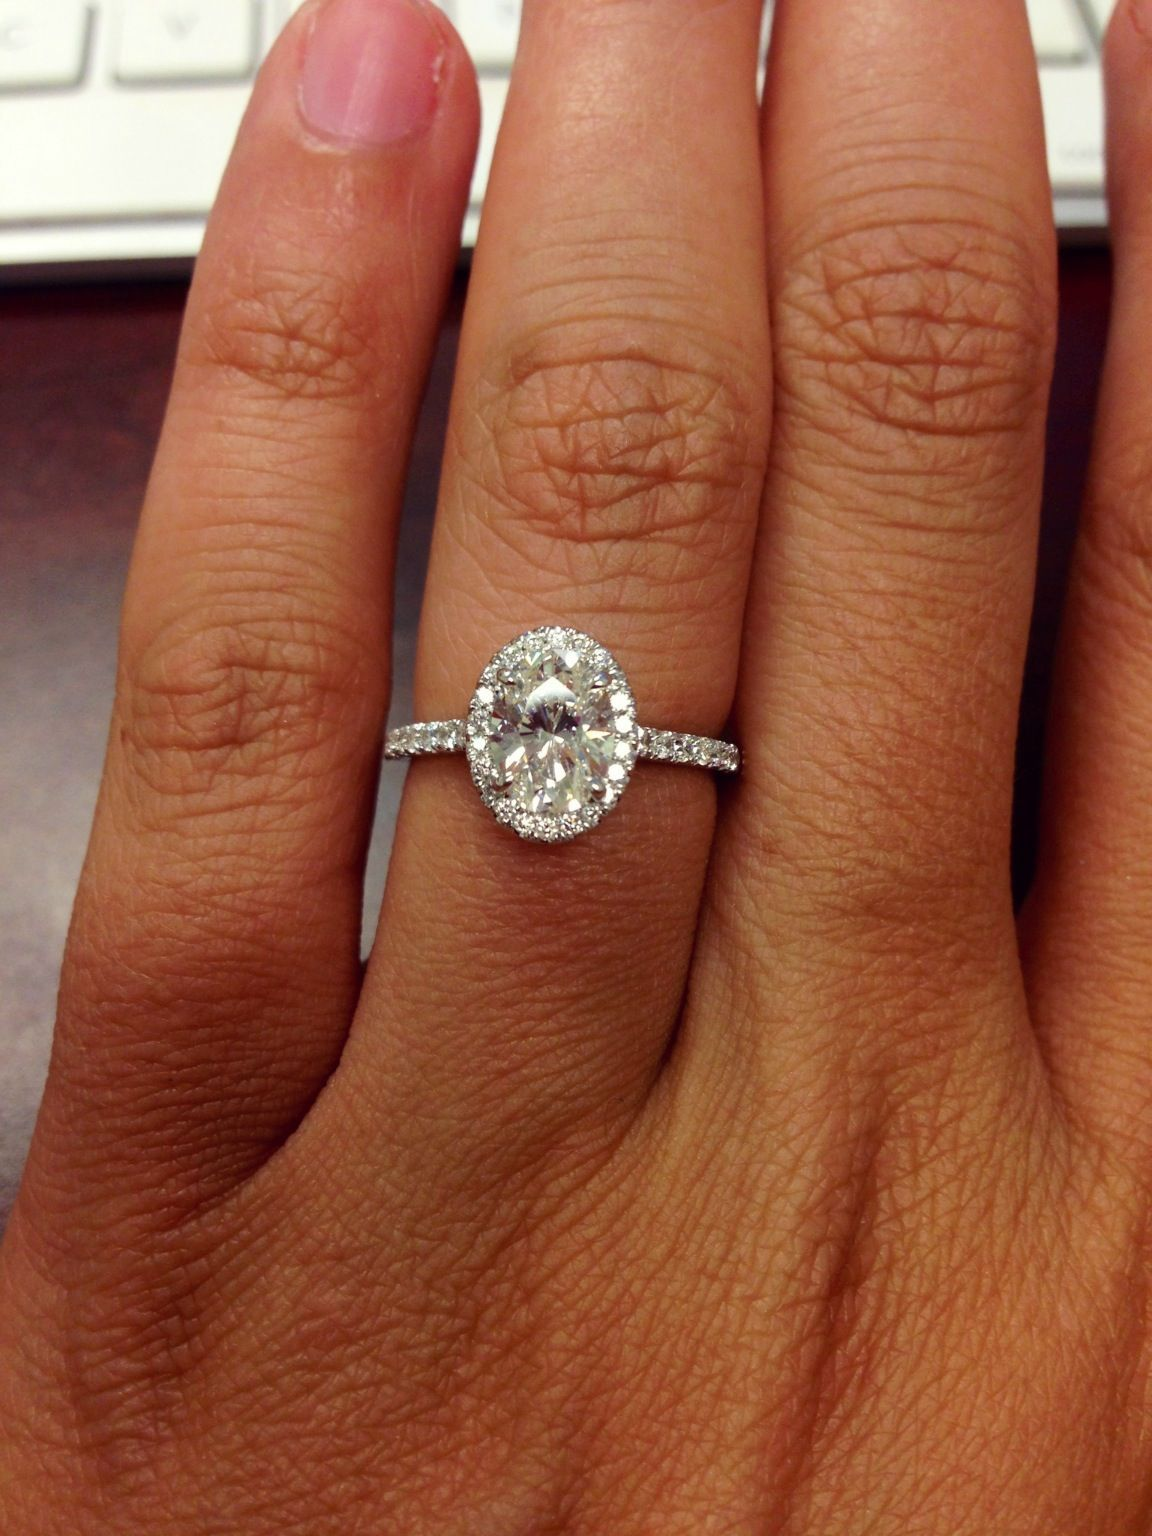 Oval wedding rings best photos page 6 of 14 oval wedding rings oval wedding rings best photos page 6 of 14 junglespirit Images